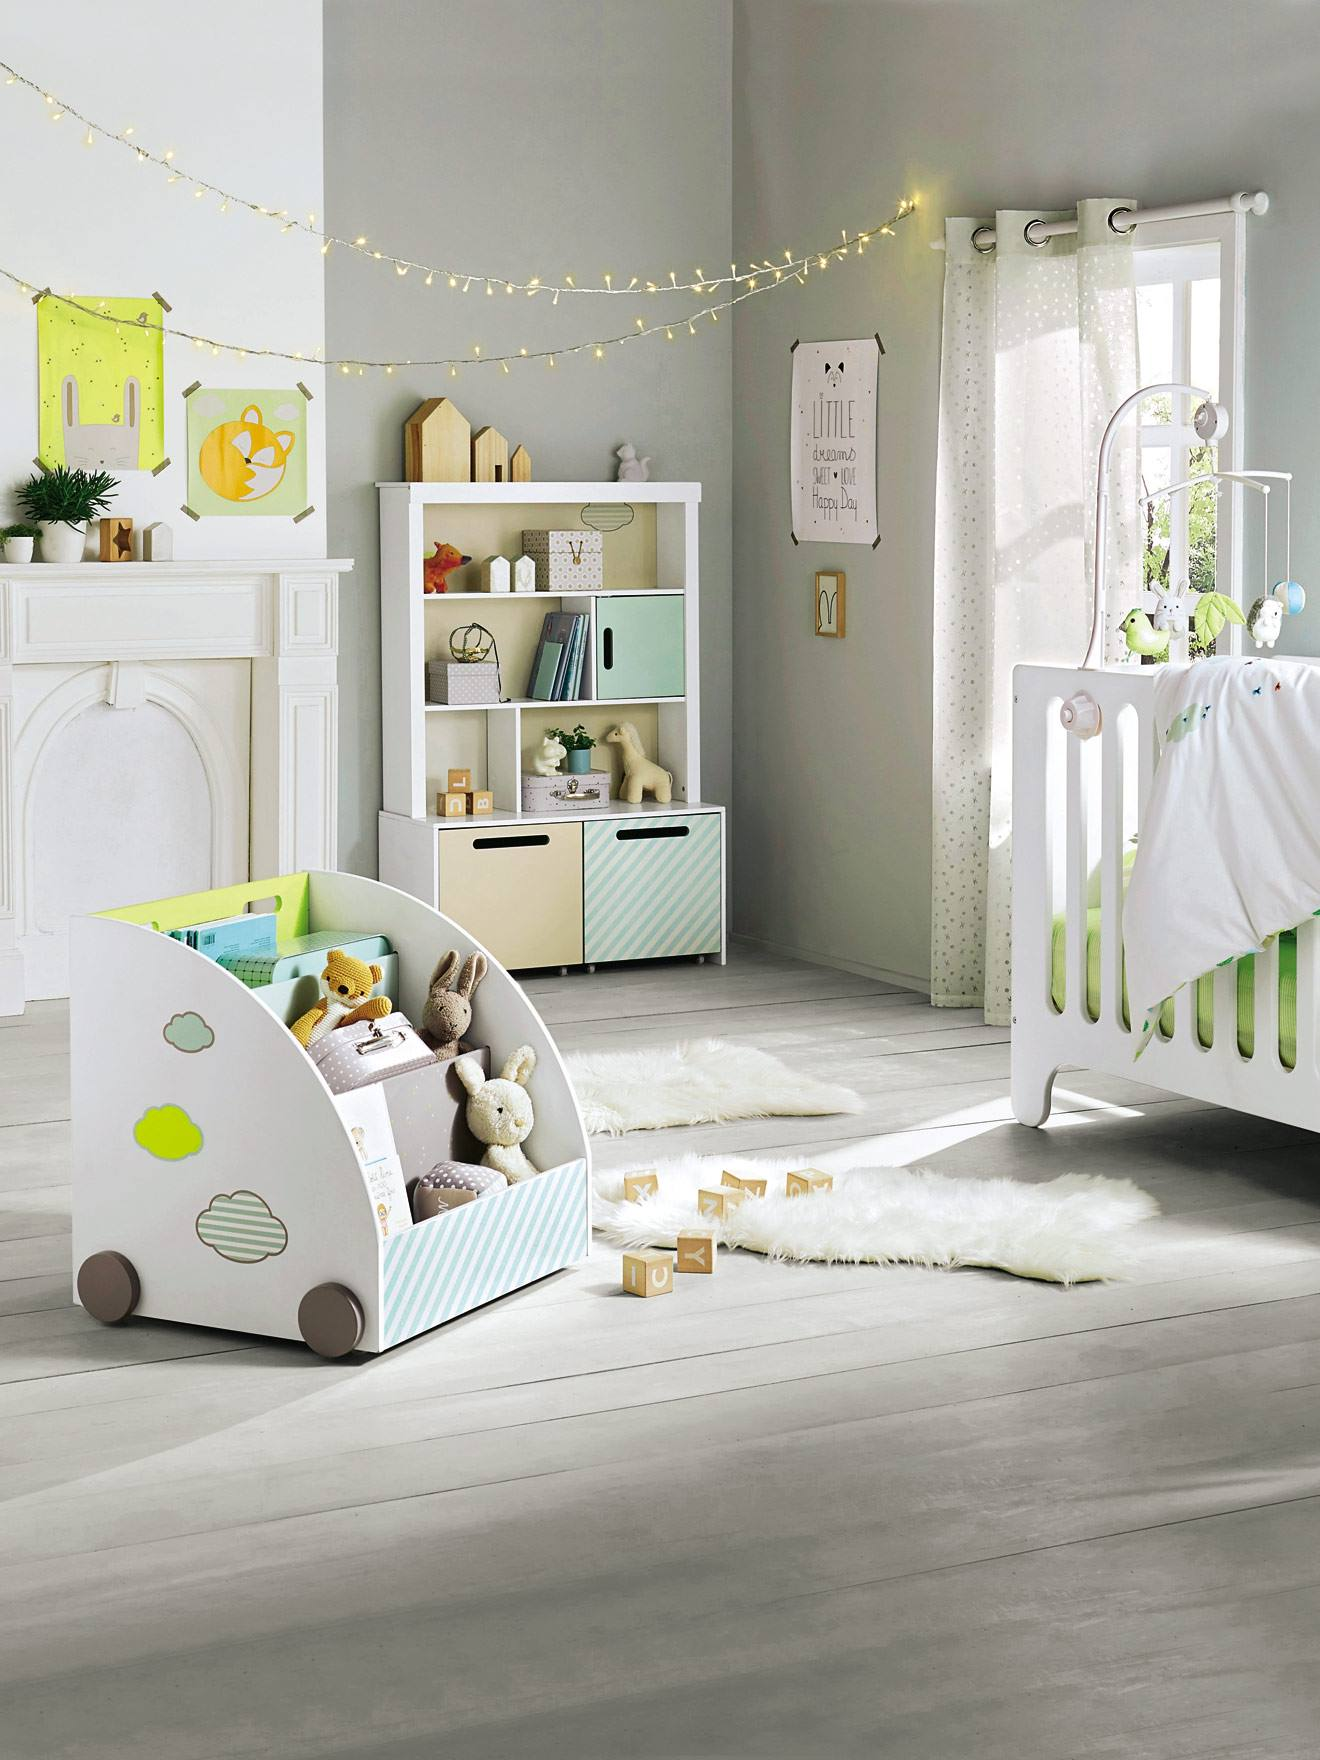 tour de lit b b brod th me pic nic vert vertbaudet. Black Bedroom Furniture Sets. Home Design Ideas